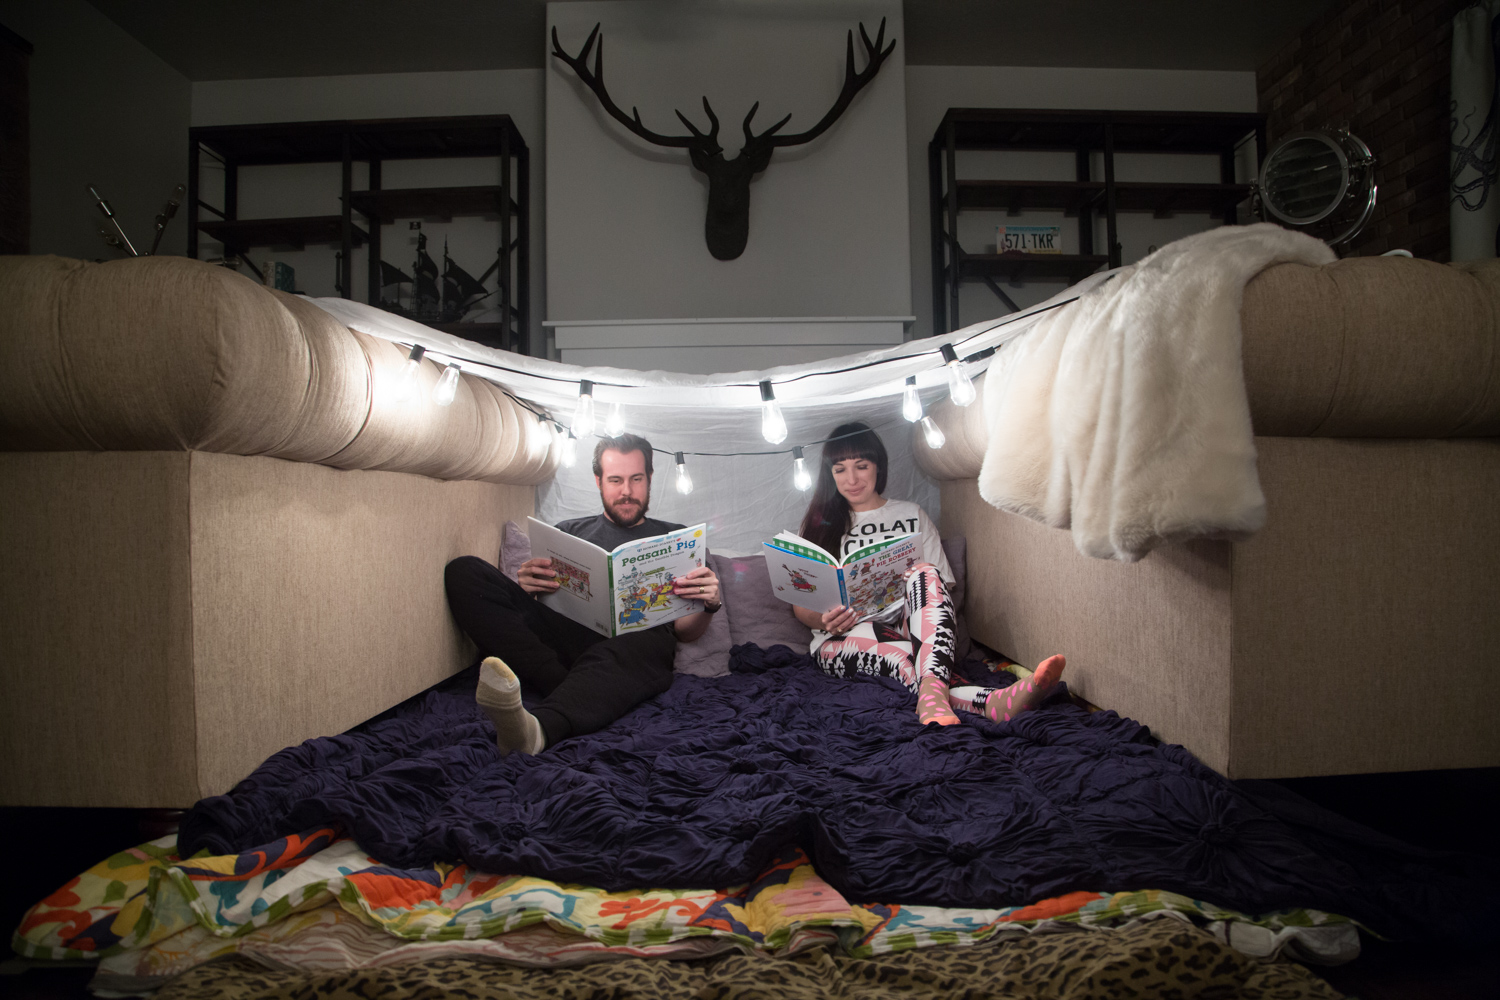 How to Build an awesome couch fort